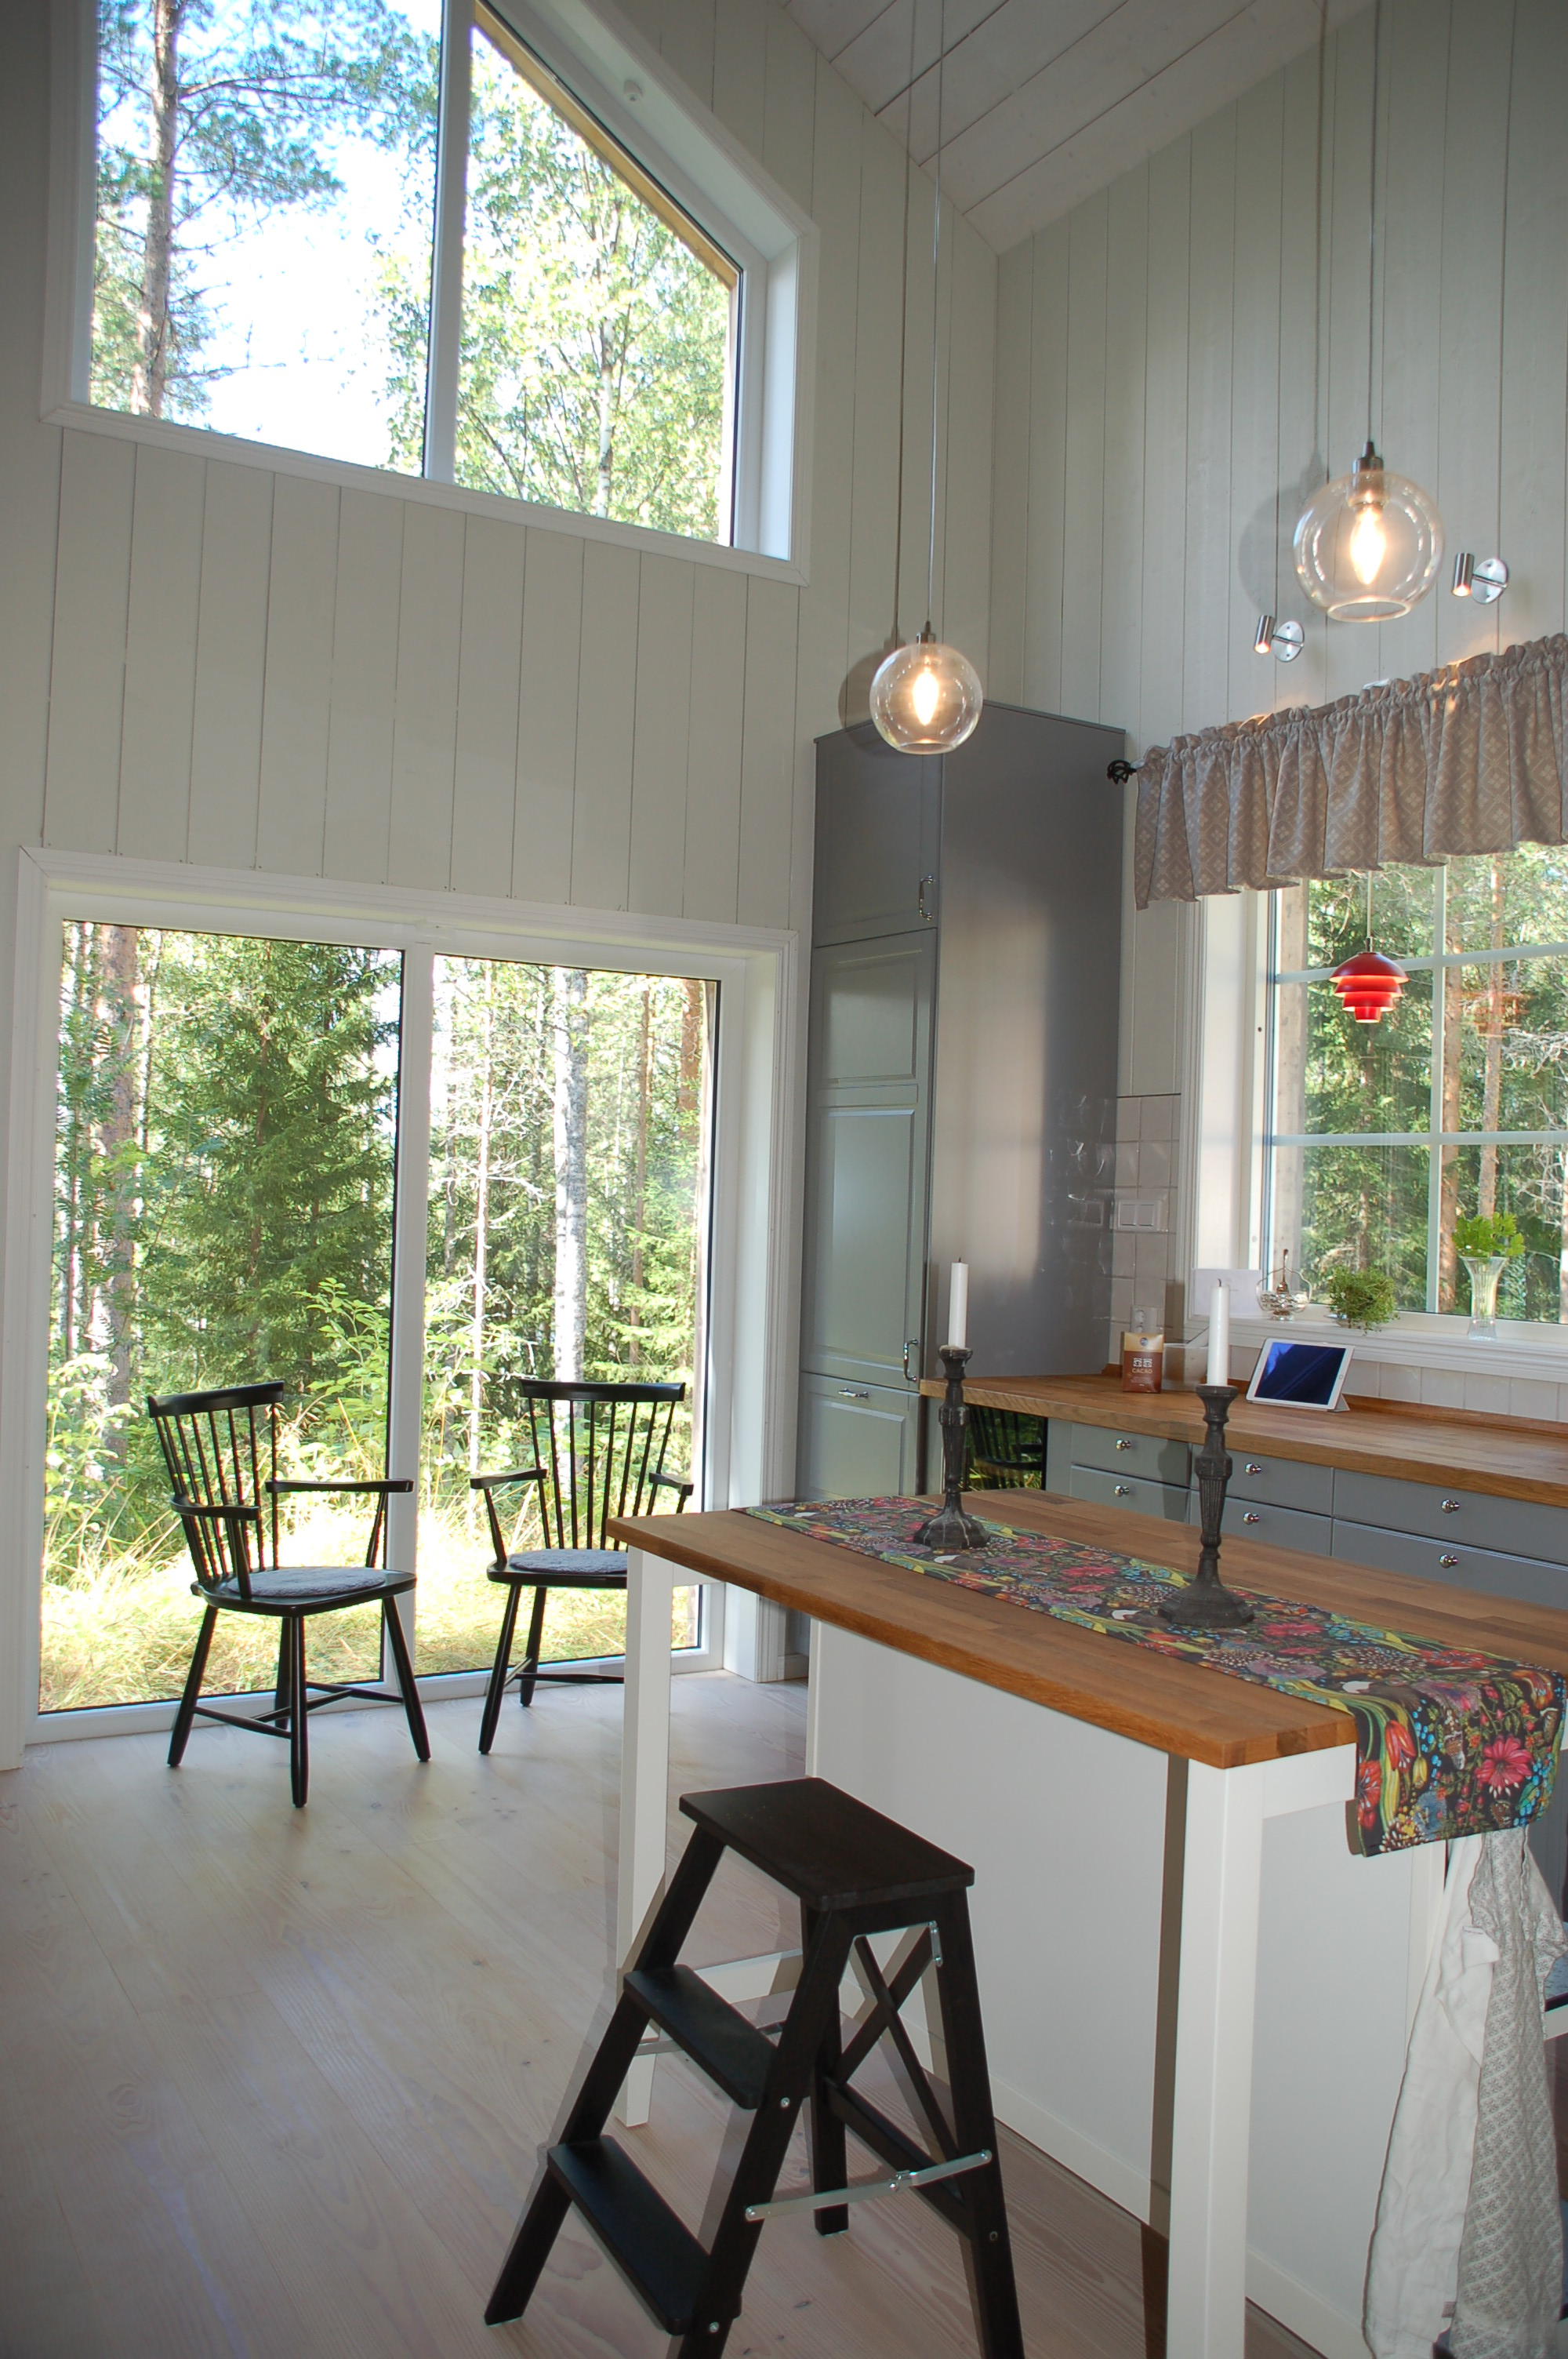 The main part of the house is the kitchen and dining area. We went with an IKEA kitchen in grey and silver.